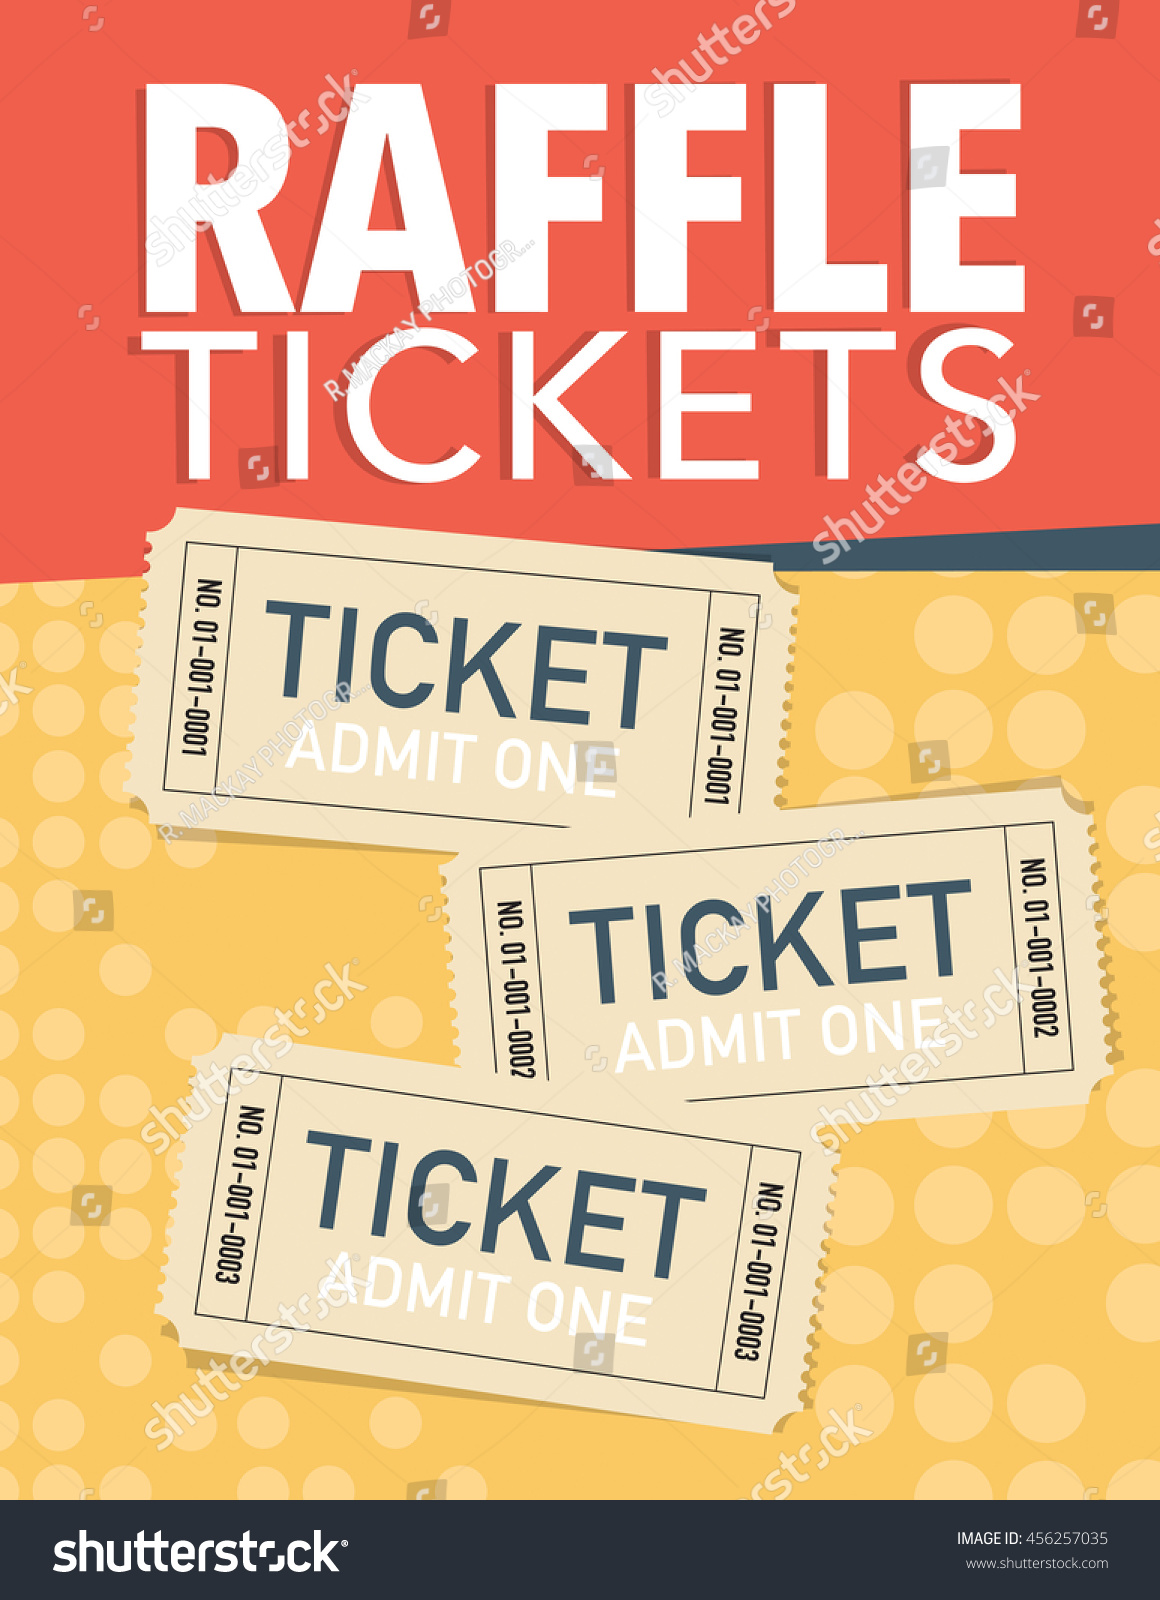 raffle tickets poster three vector tickets stock vector  raffle tickets poster three vector tickets